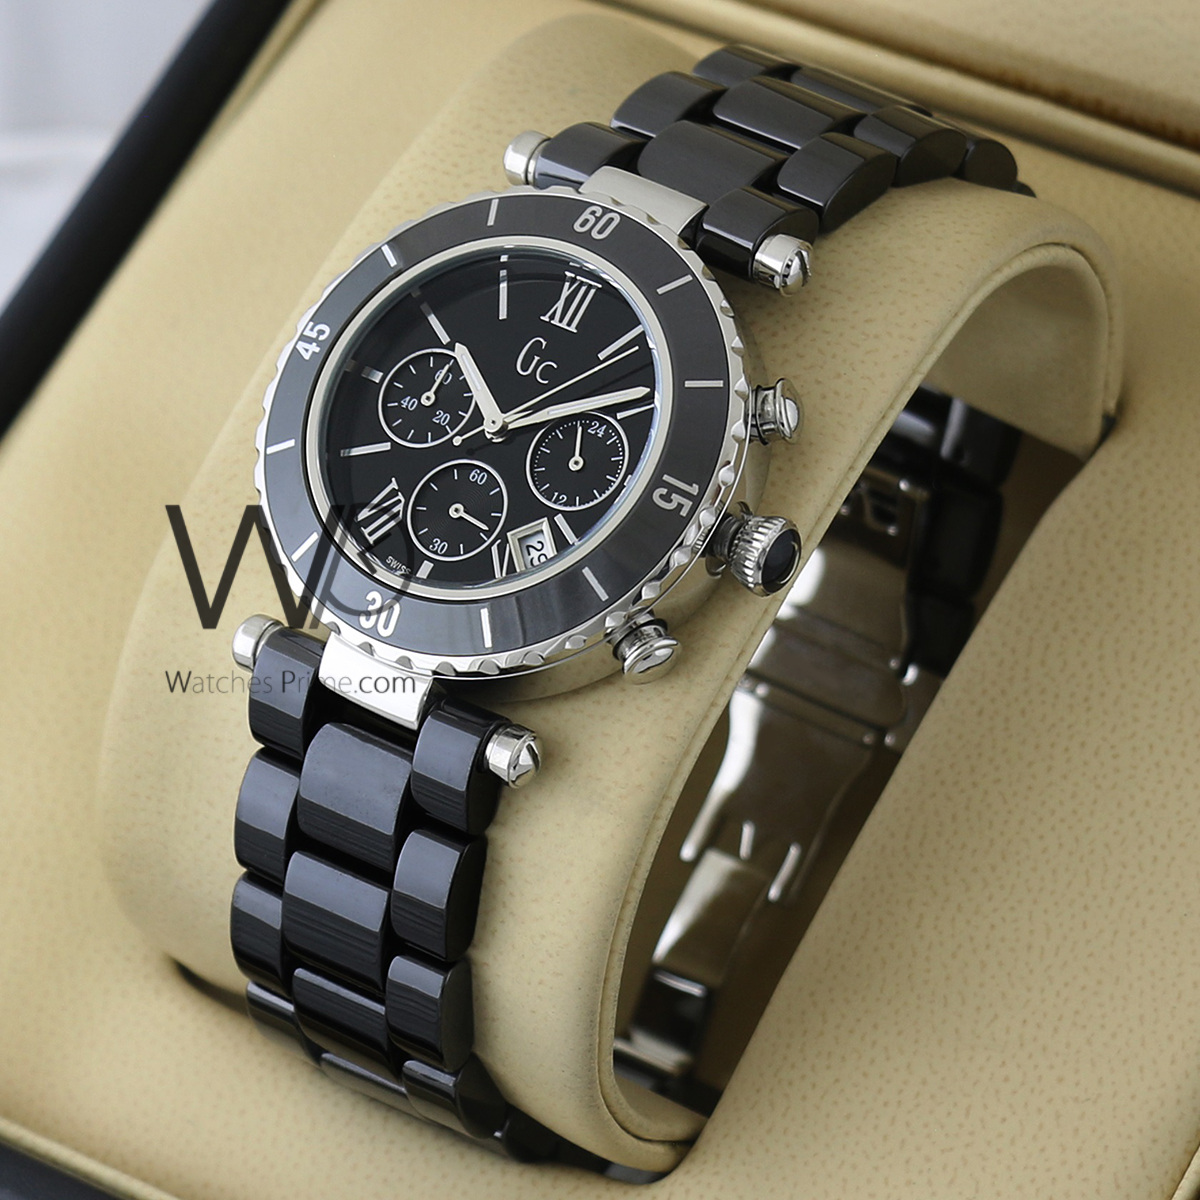 20993f34e GUESS COLLECTION CHRONOGRAPH WATCH BLACK WITH CERAMIC BLACK BELT. SKU:  w1639. Roll over image to zoom in